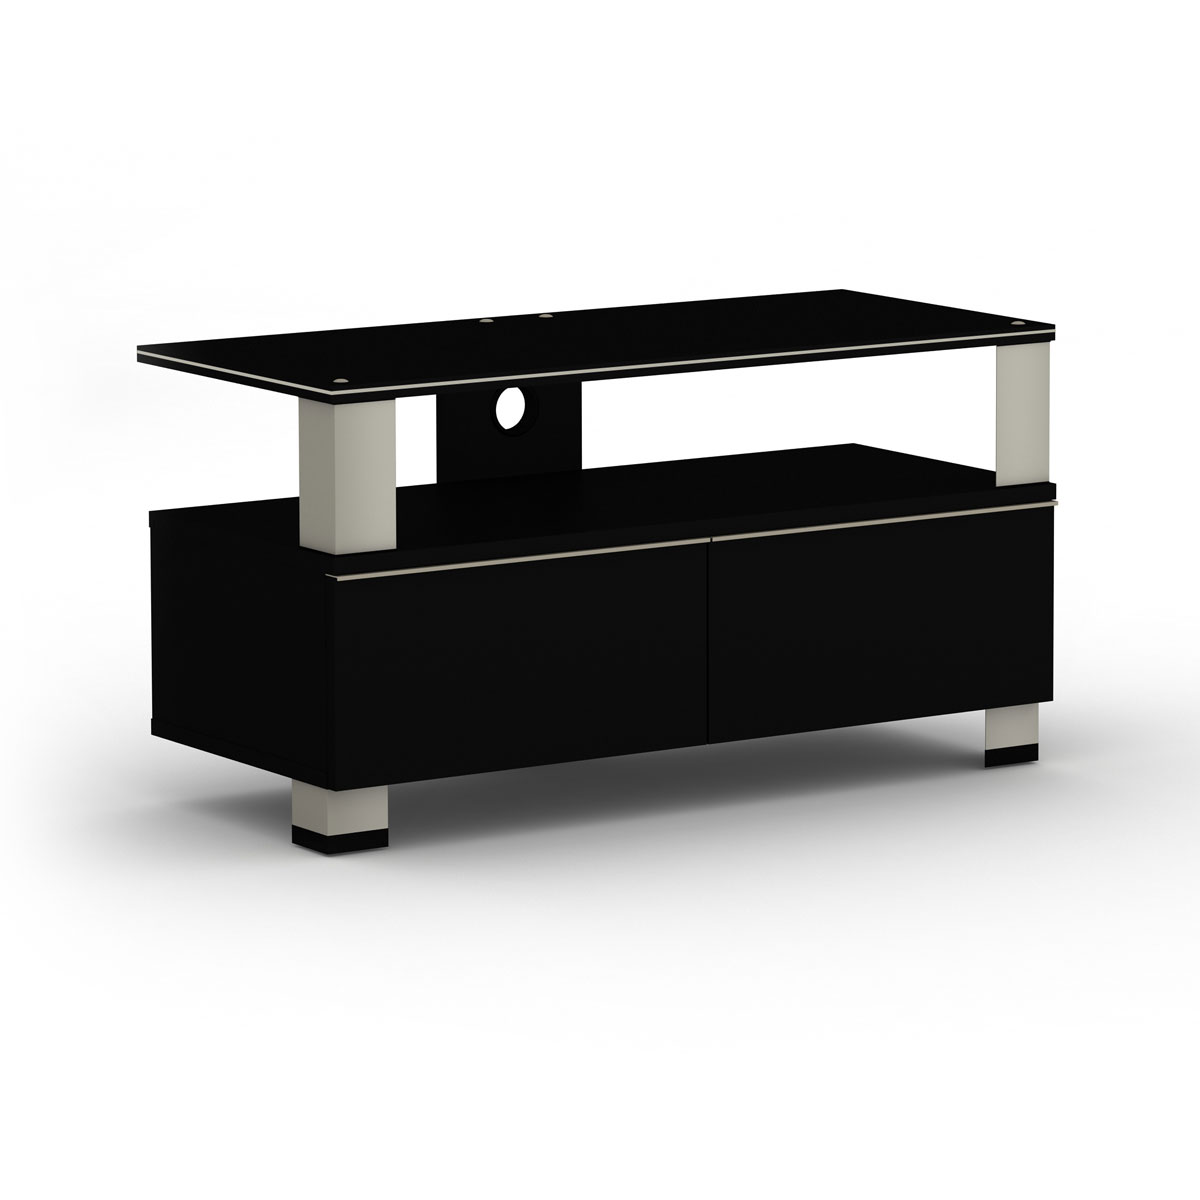 elmob tura tu 095 01 noir meuble tv elmob sur ldlc. Black Bedroom Furniture Sets. Home Design Ideas